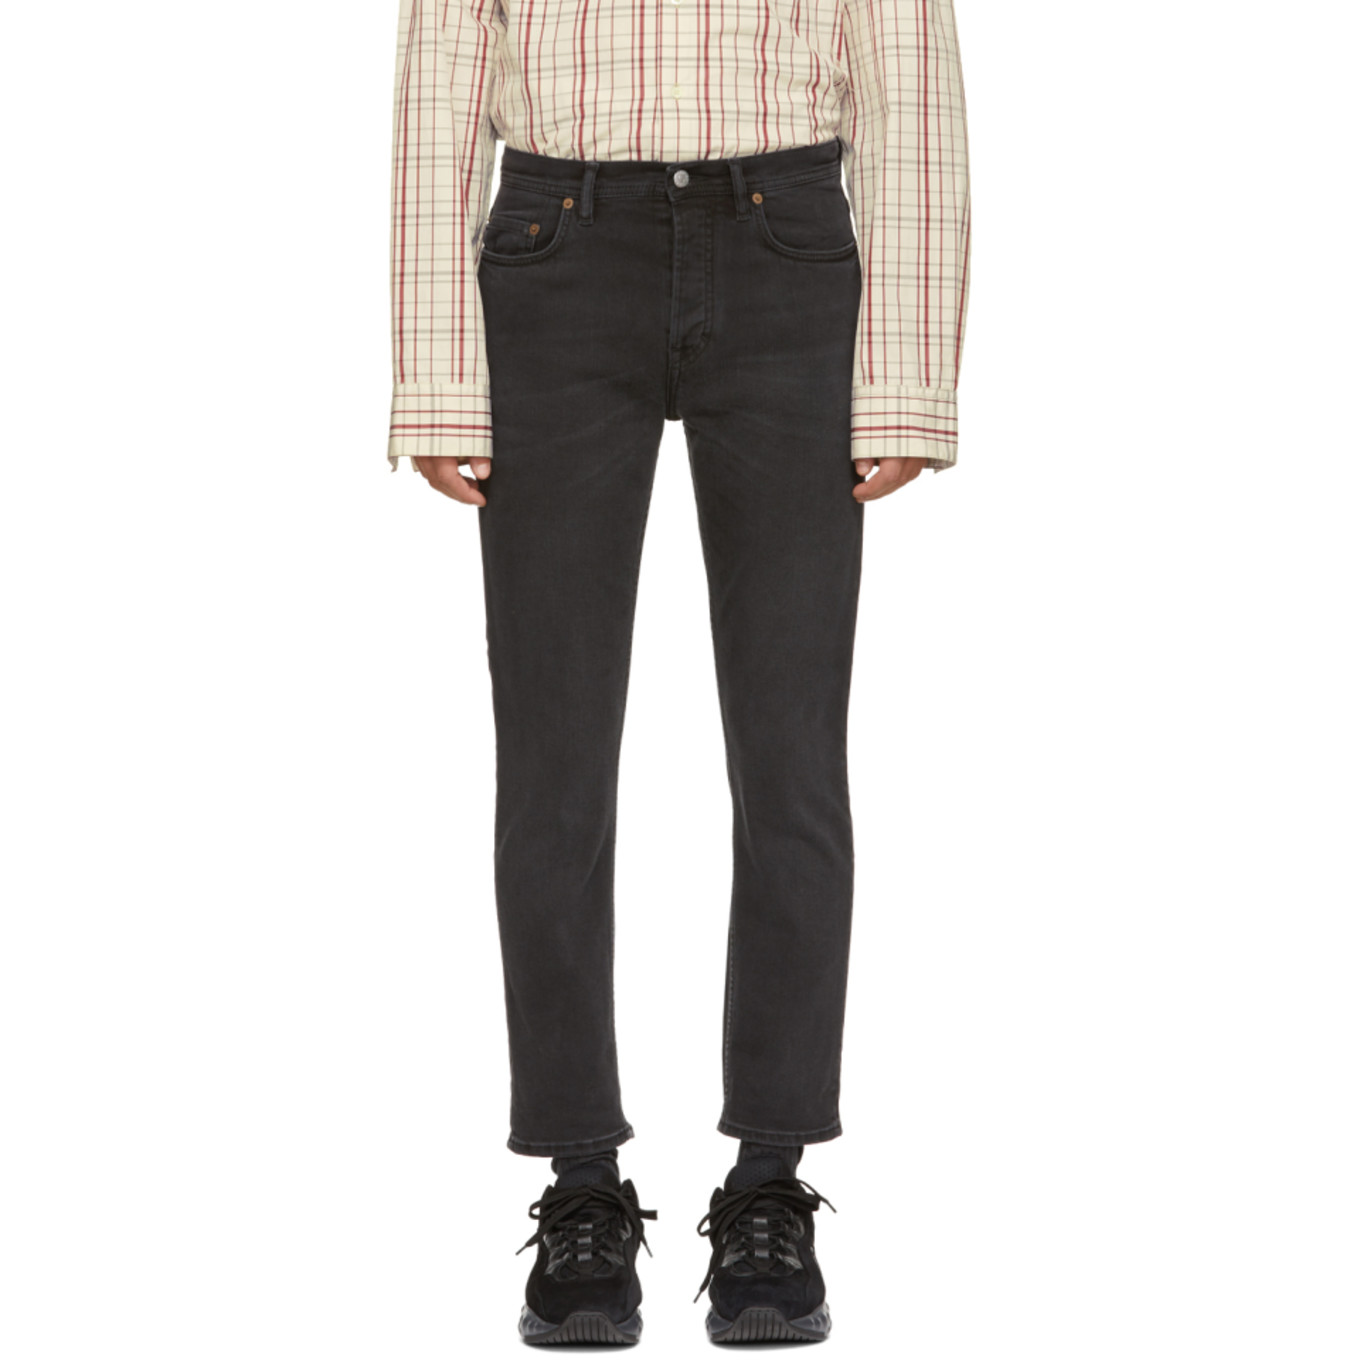 Black Blå Konst River Jeans by Acne Studios